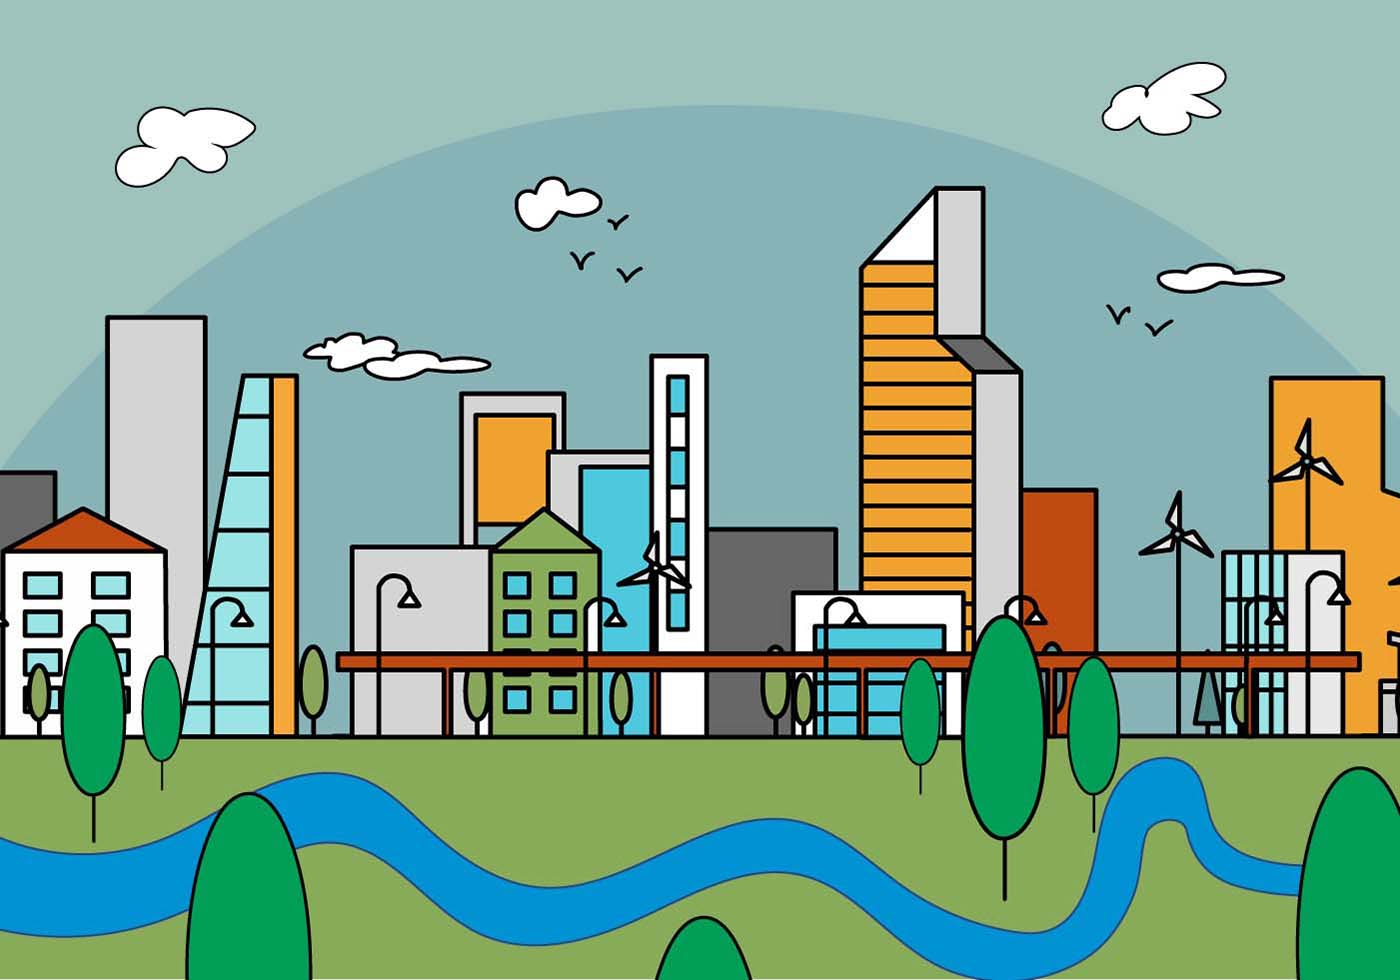 Download Free Vector Art Stock: Free Linear City Vector Illustration